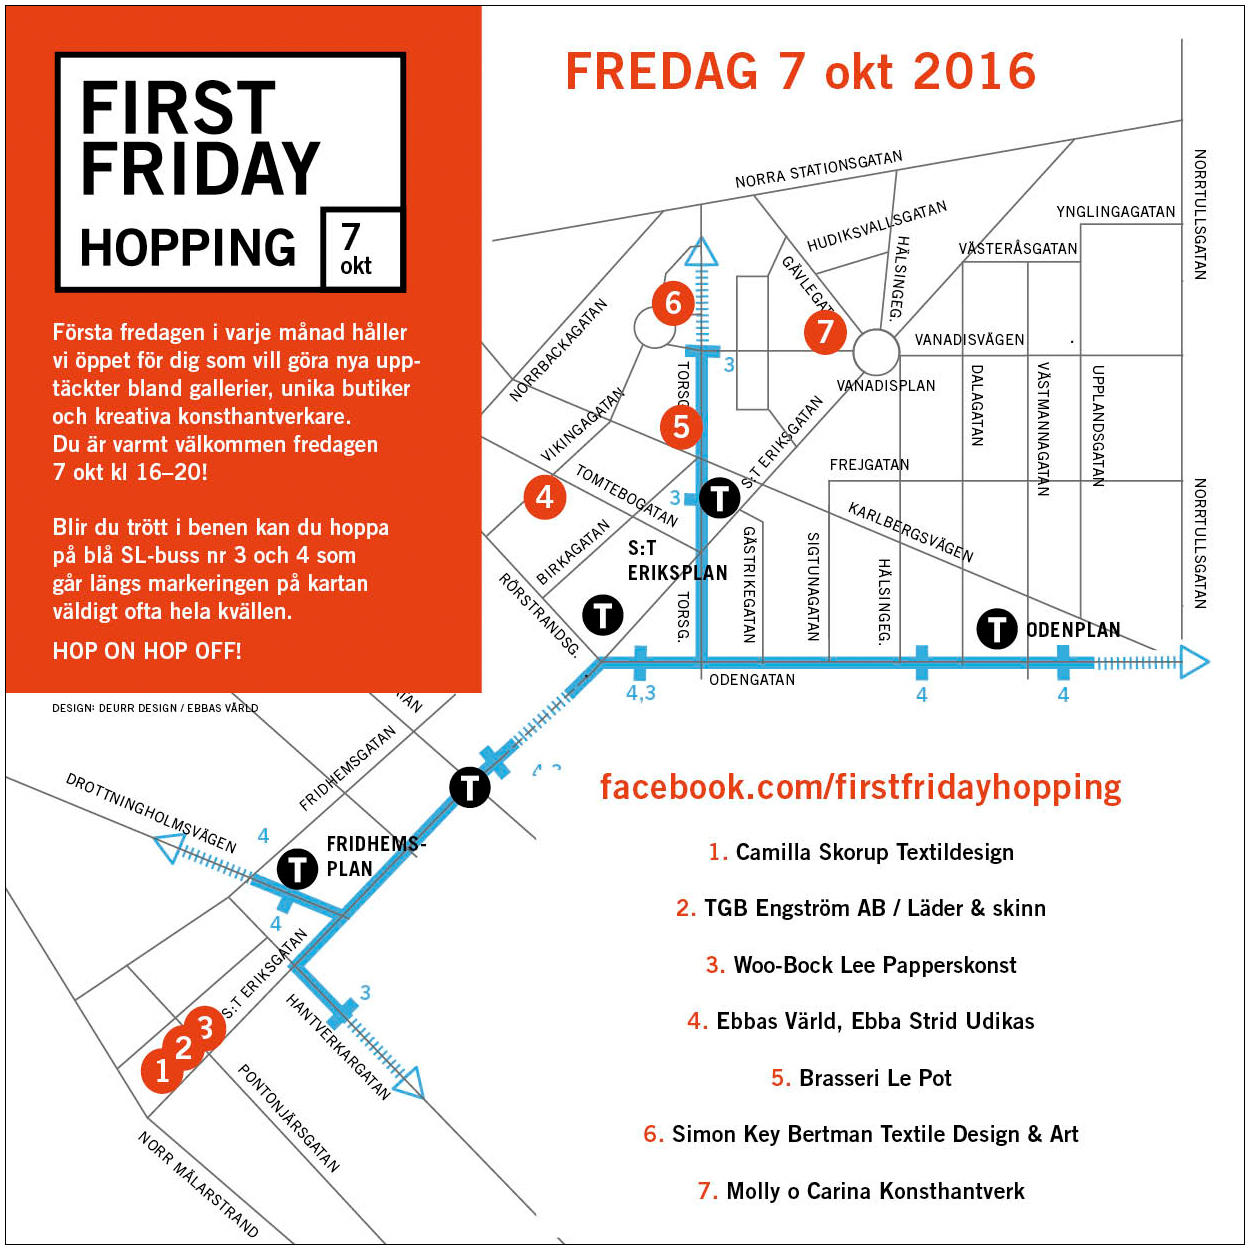 first_friday_hopping_karta_20161007